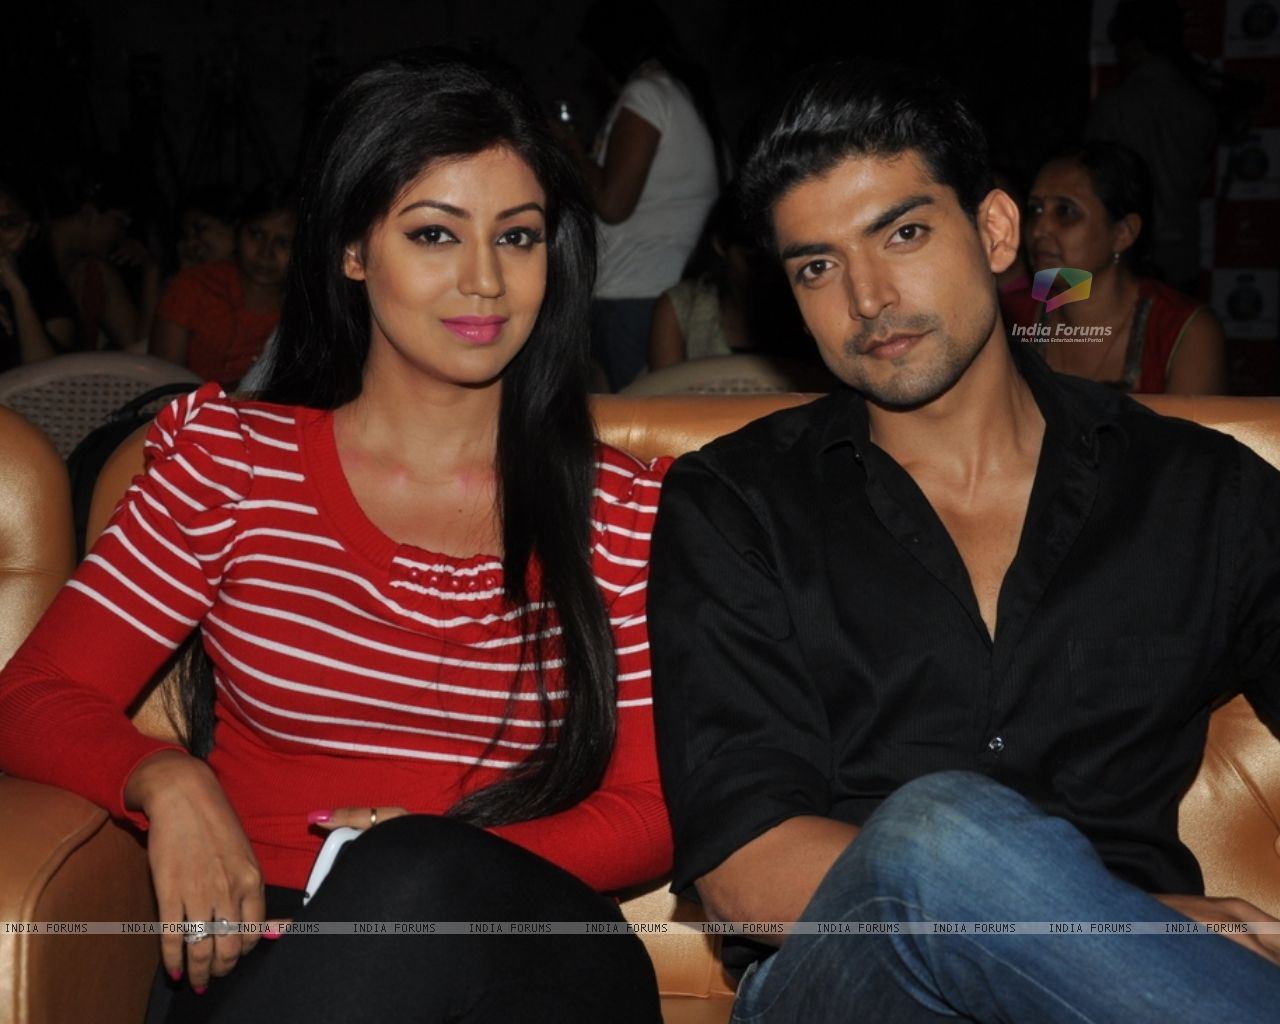 http://img.india-forums.com/wallpapers/1280x1024/274043-debina-bonnerjee-with-husband-gurmeet-choudhary-at-nach-baliye.jpg